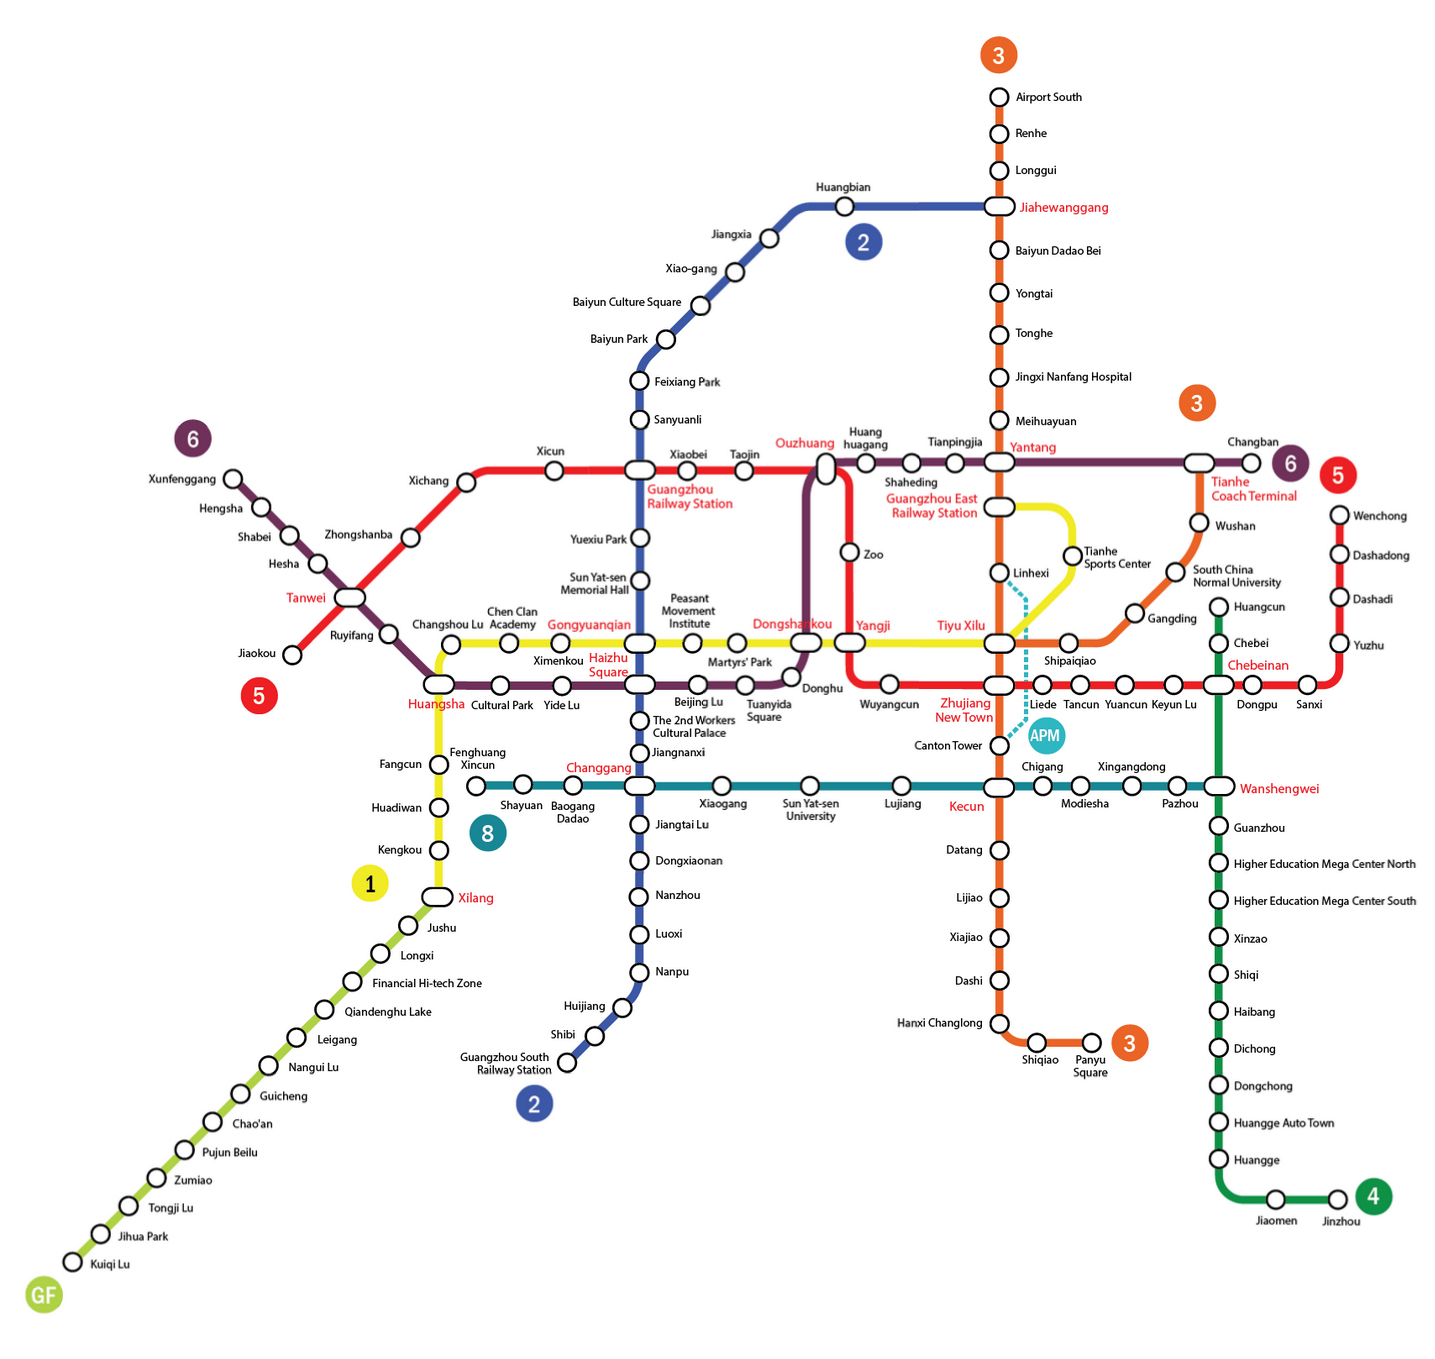 Guangzhou Subway Map 2017.China Subway Maps Beijing Subway Map Shanghai Subway Map